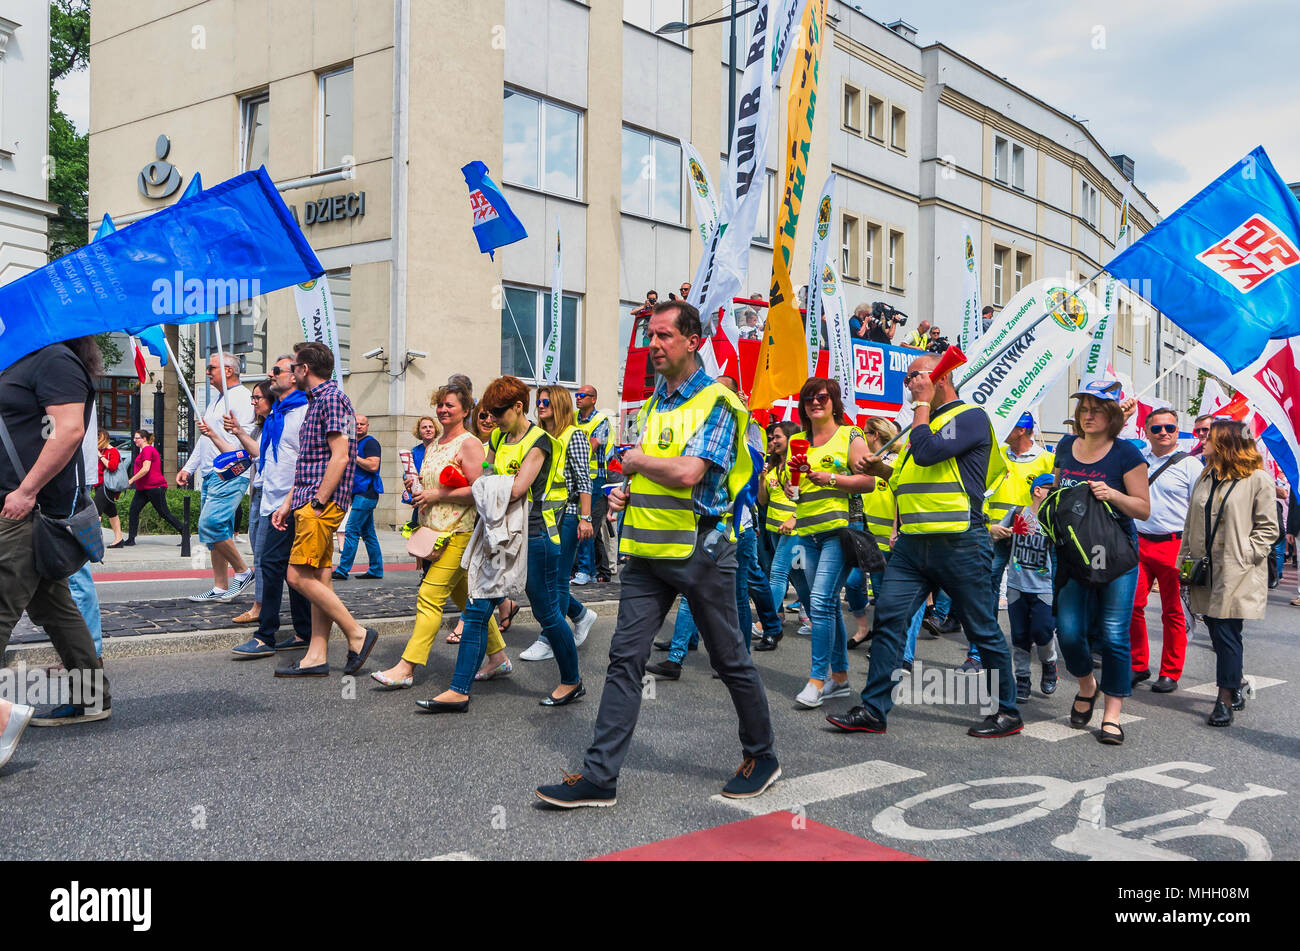 Warsaw, Poland. 1st May, 2018. People attend the May Day demonstration organised by working people, their trade unions and left-wing political parties to mark the International Workers' Day. Credit: dario photography/Alamy Live News - Stock Image